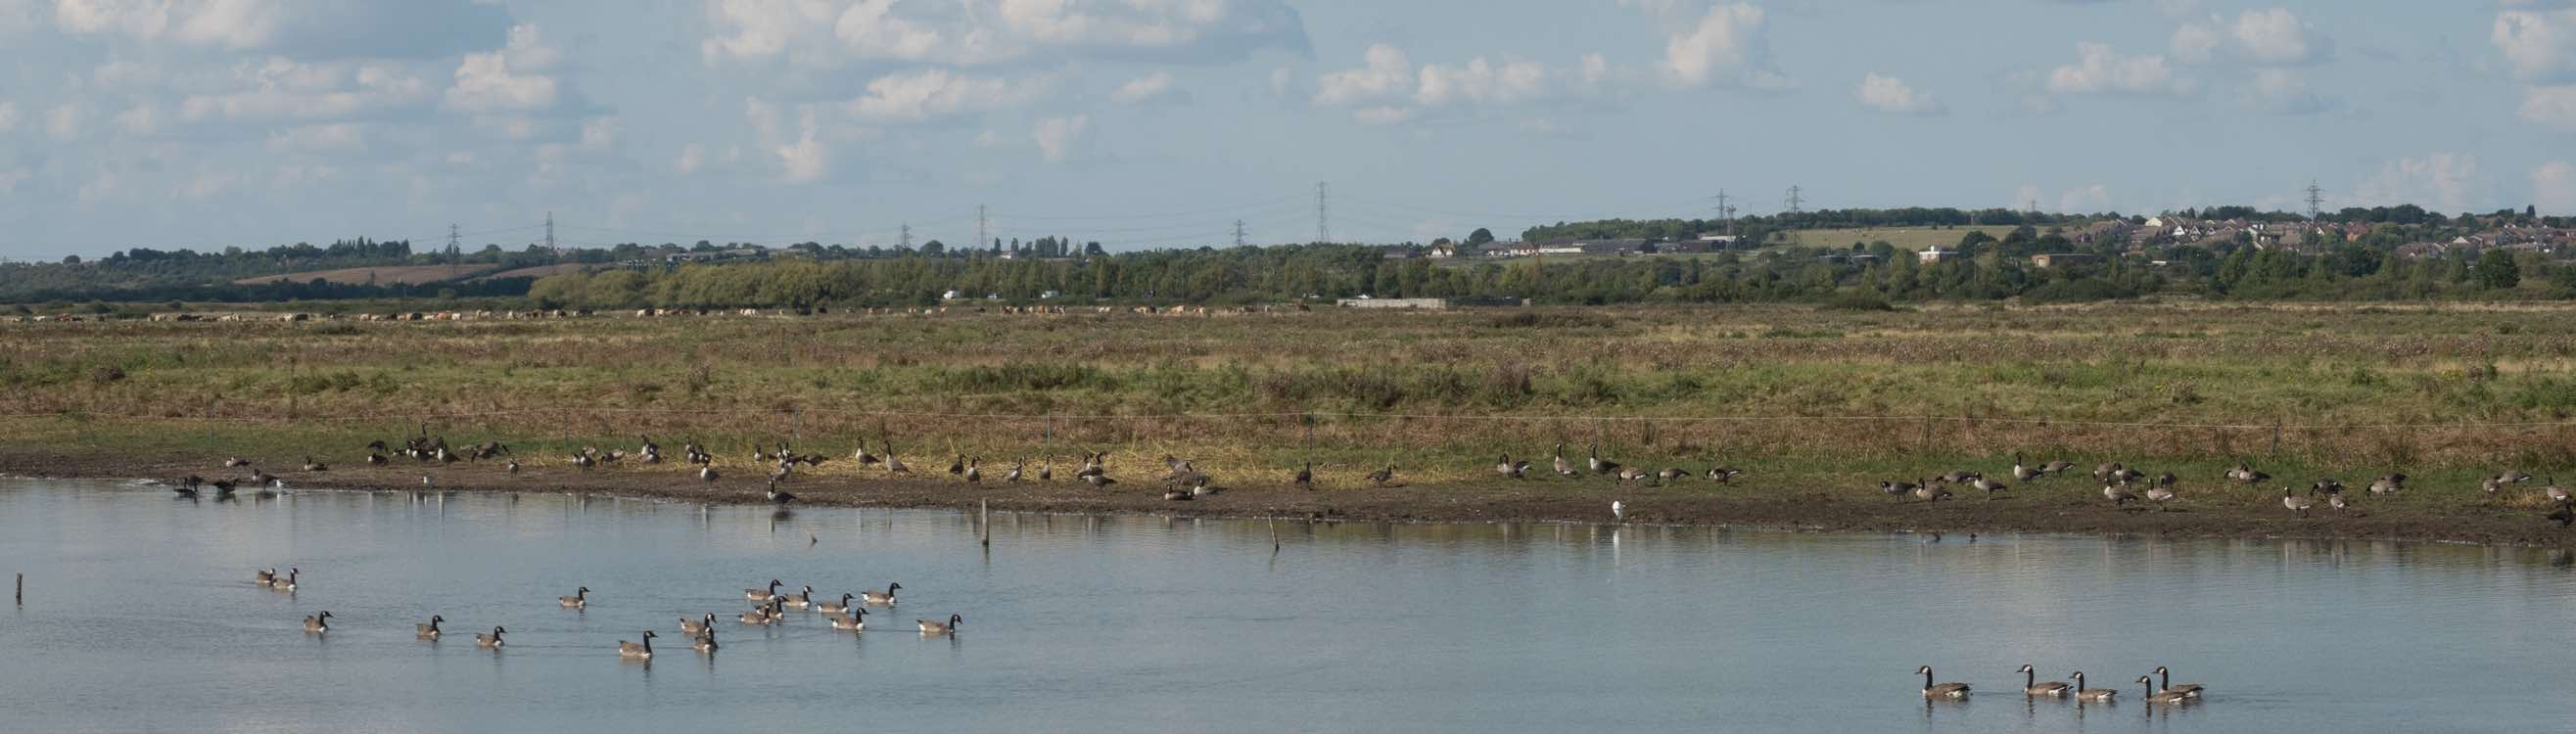 West Canvey Marshes RSPB